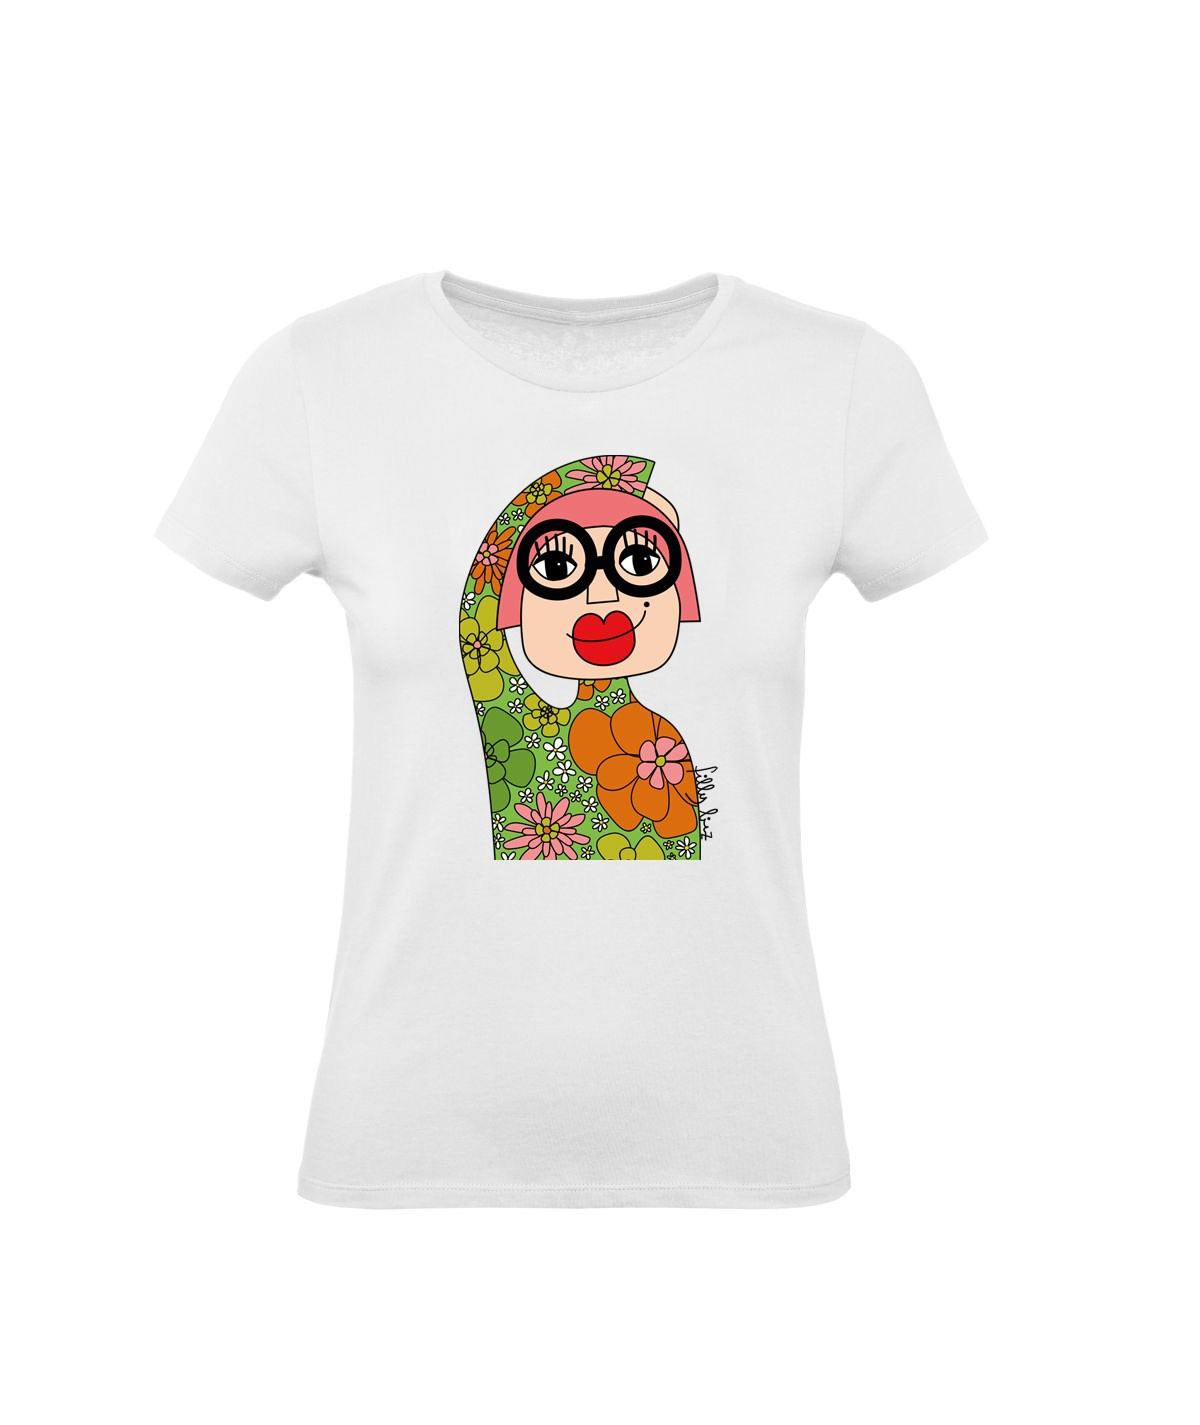 Seventies girl ● t-shirt...